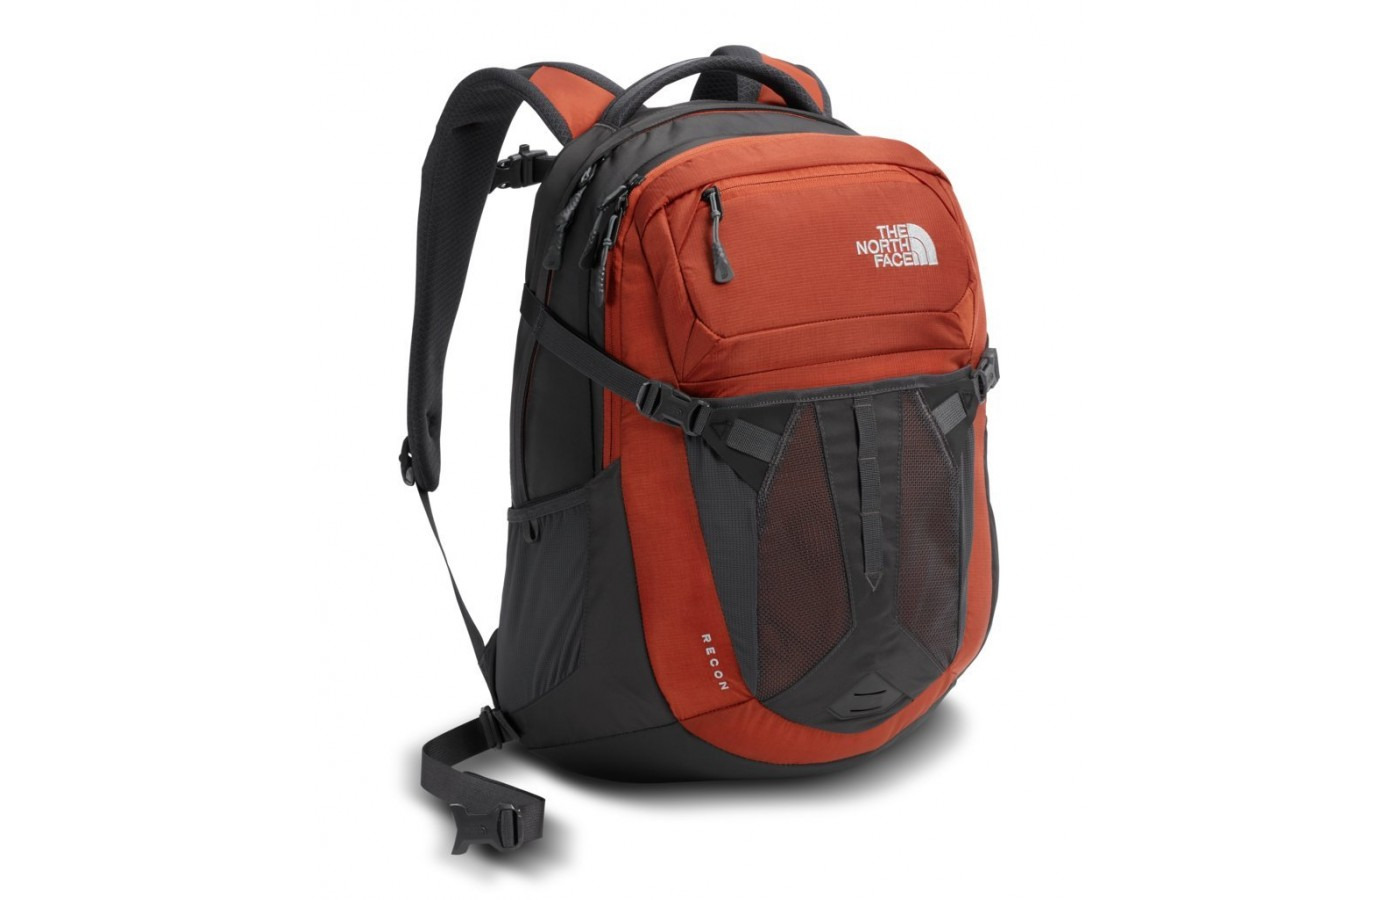 The North Face Jester Backpack is a redesigned model that is made of 600D polyester.